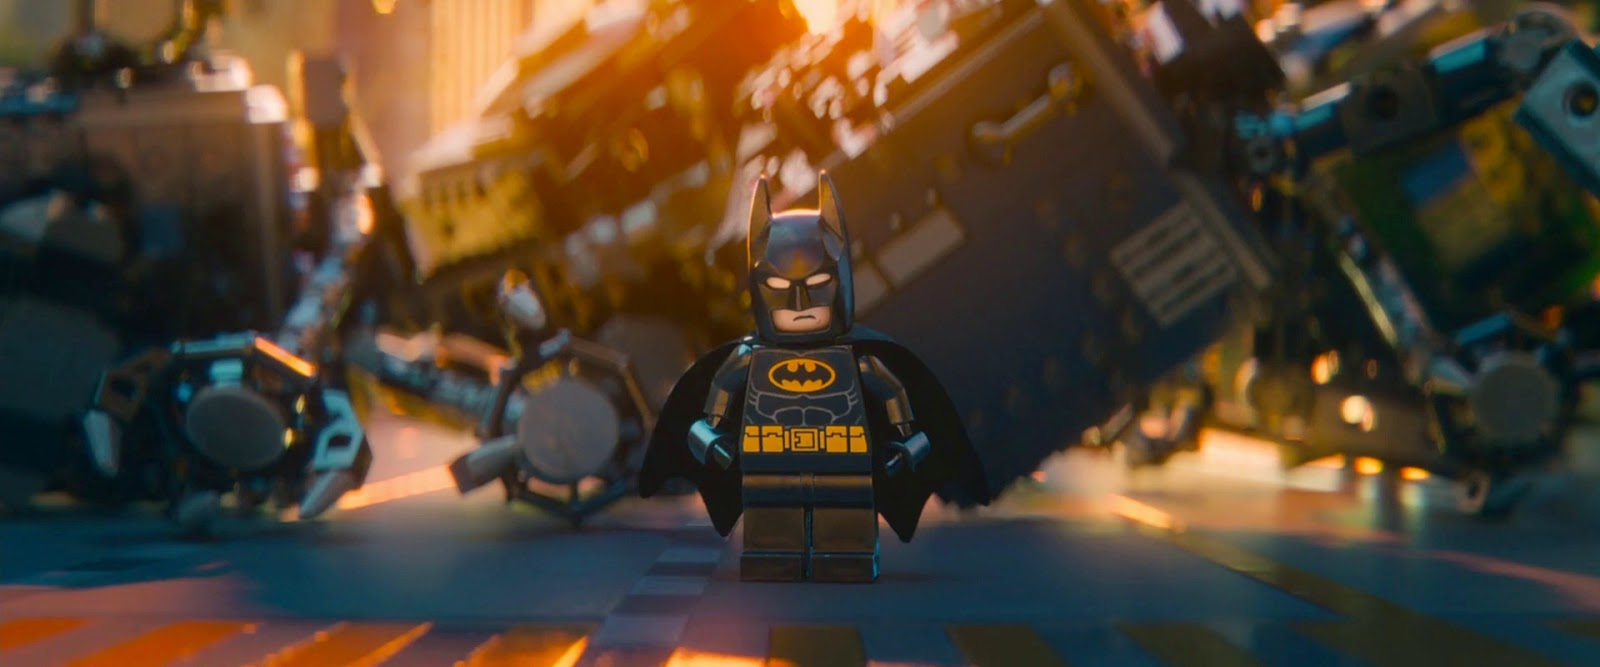 The Lego Movie (2014) 1080p S3 s The Lego Movie (2014) 1080p